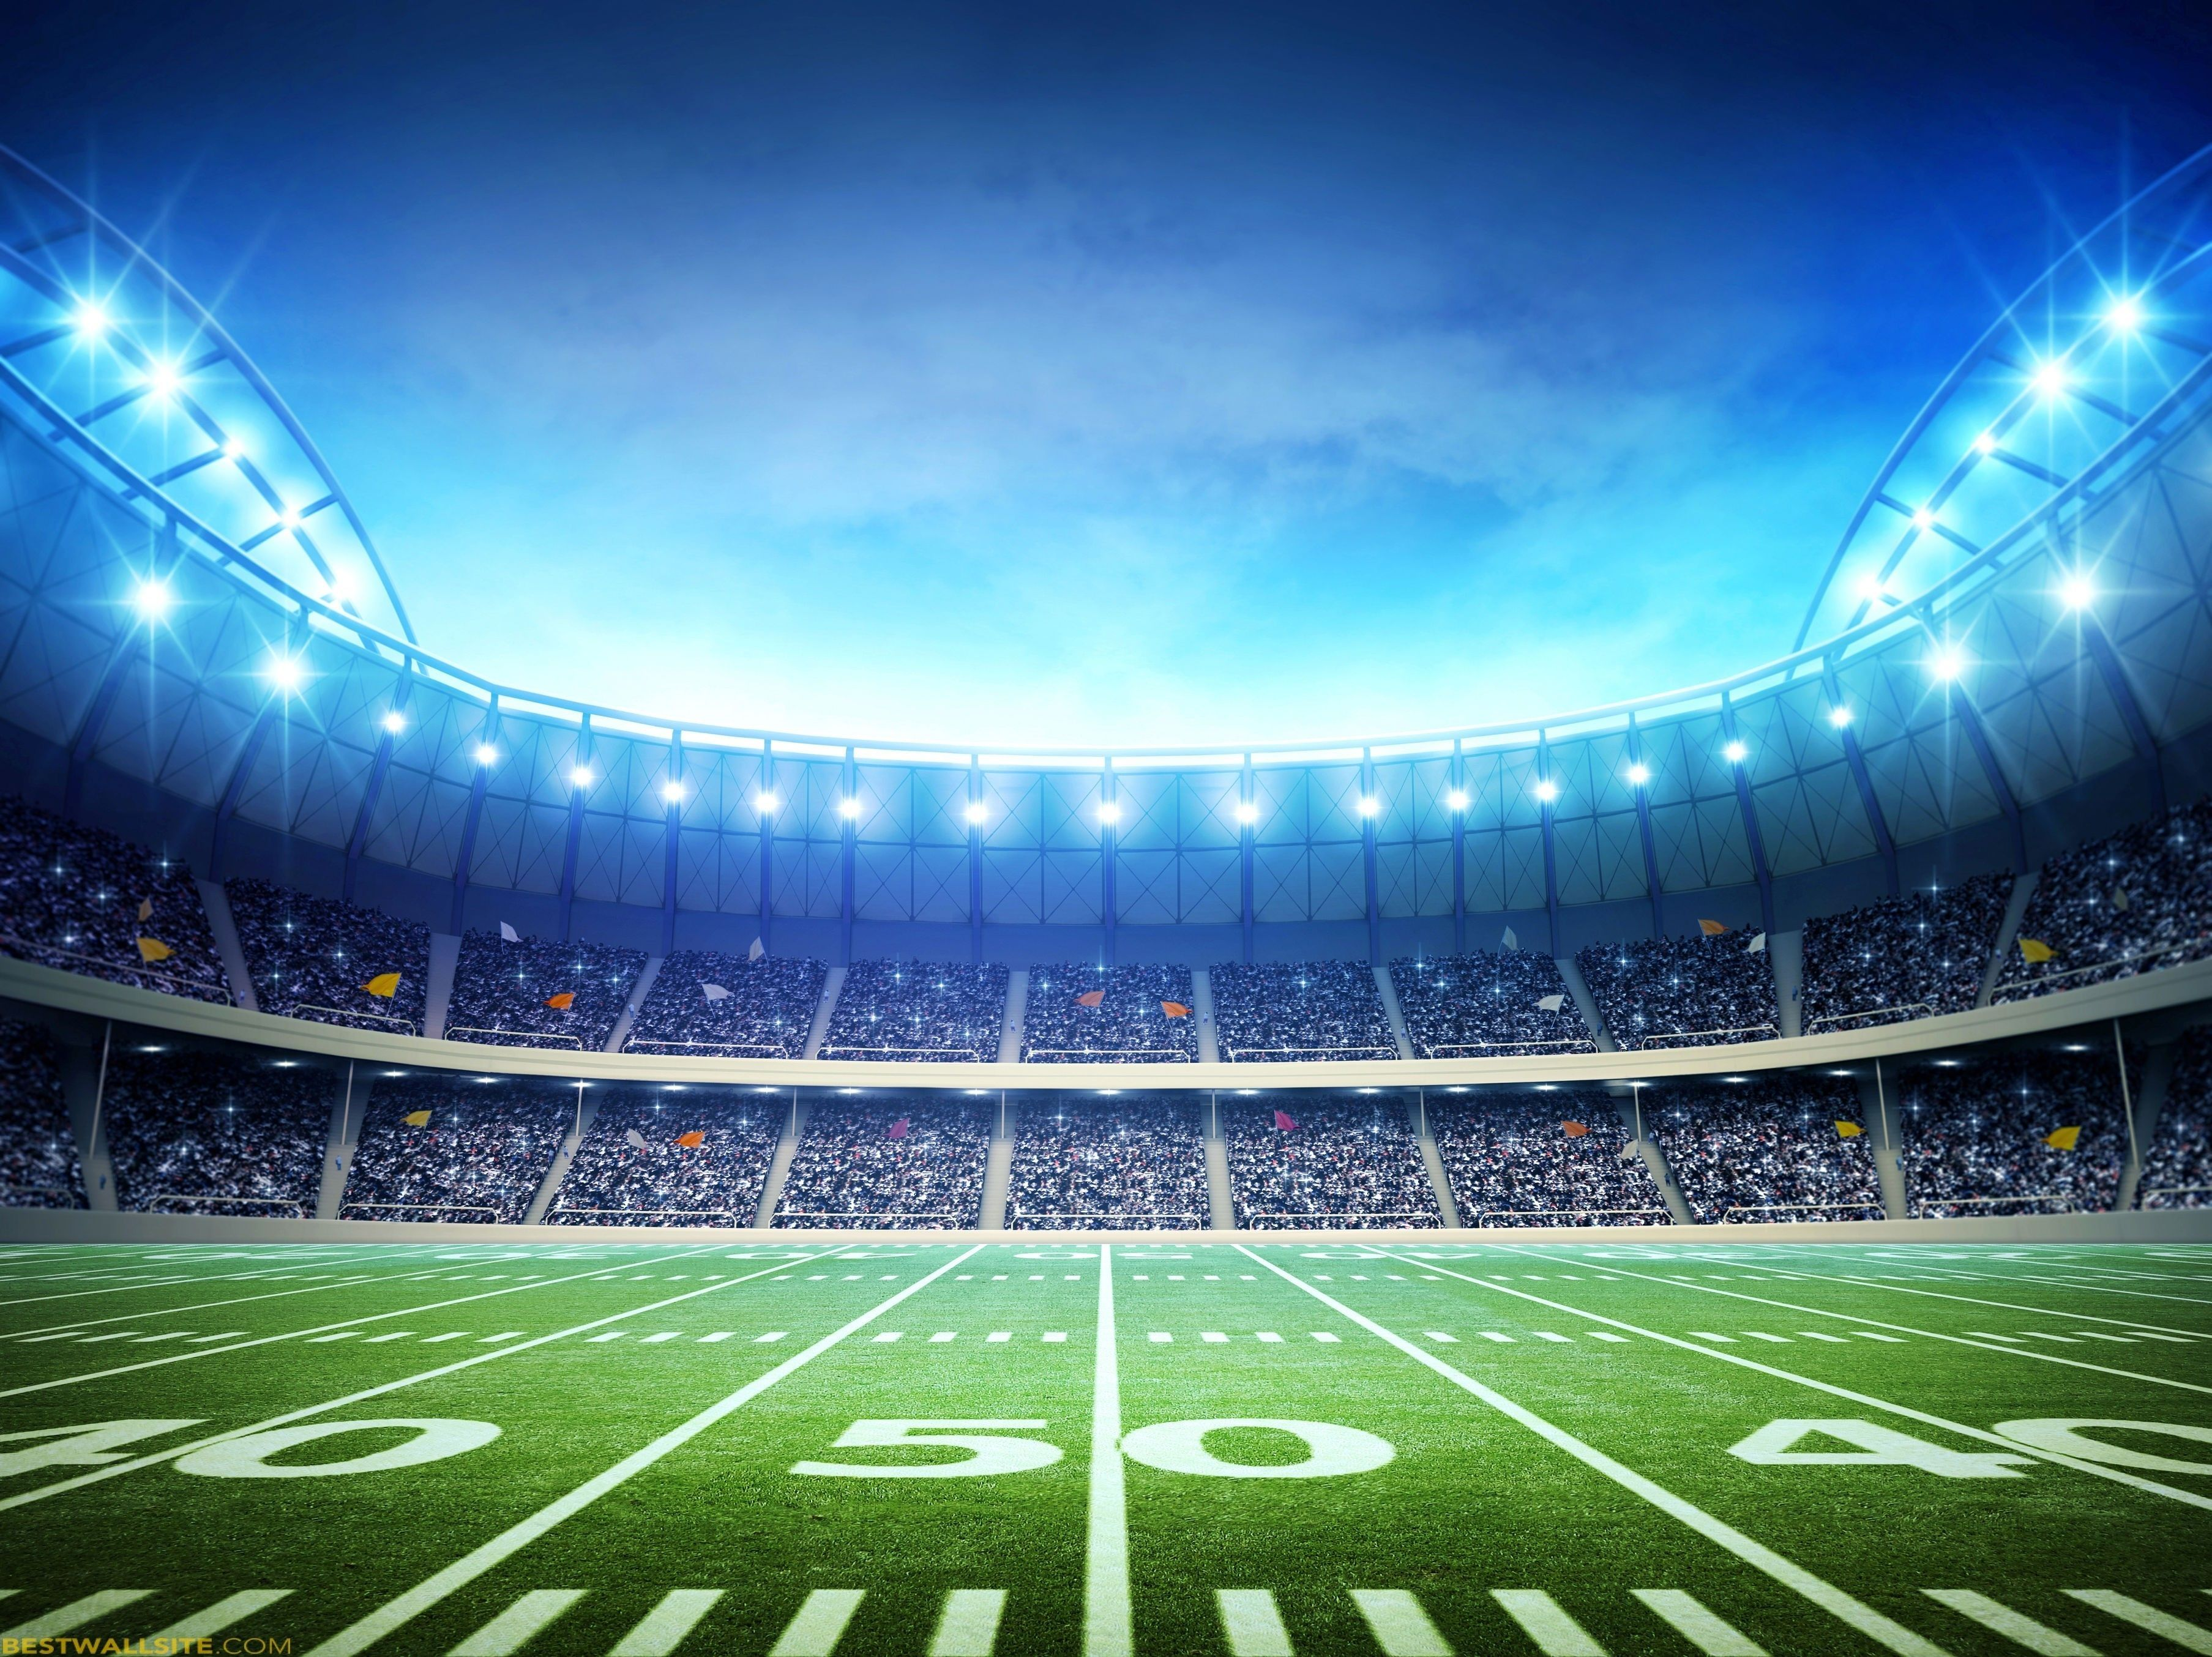 10 Top Nfl Football Stadium Background FULL HD 1080p For